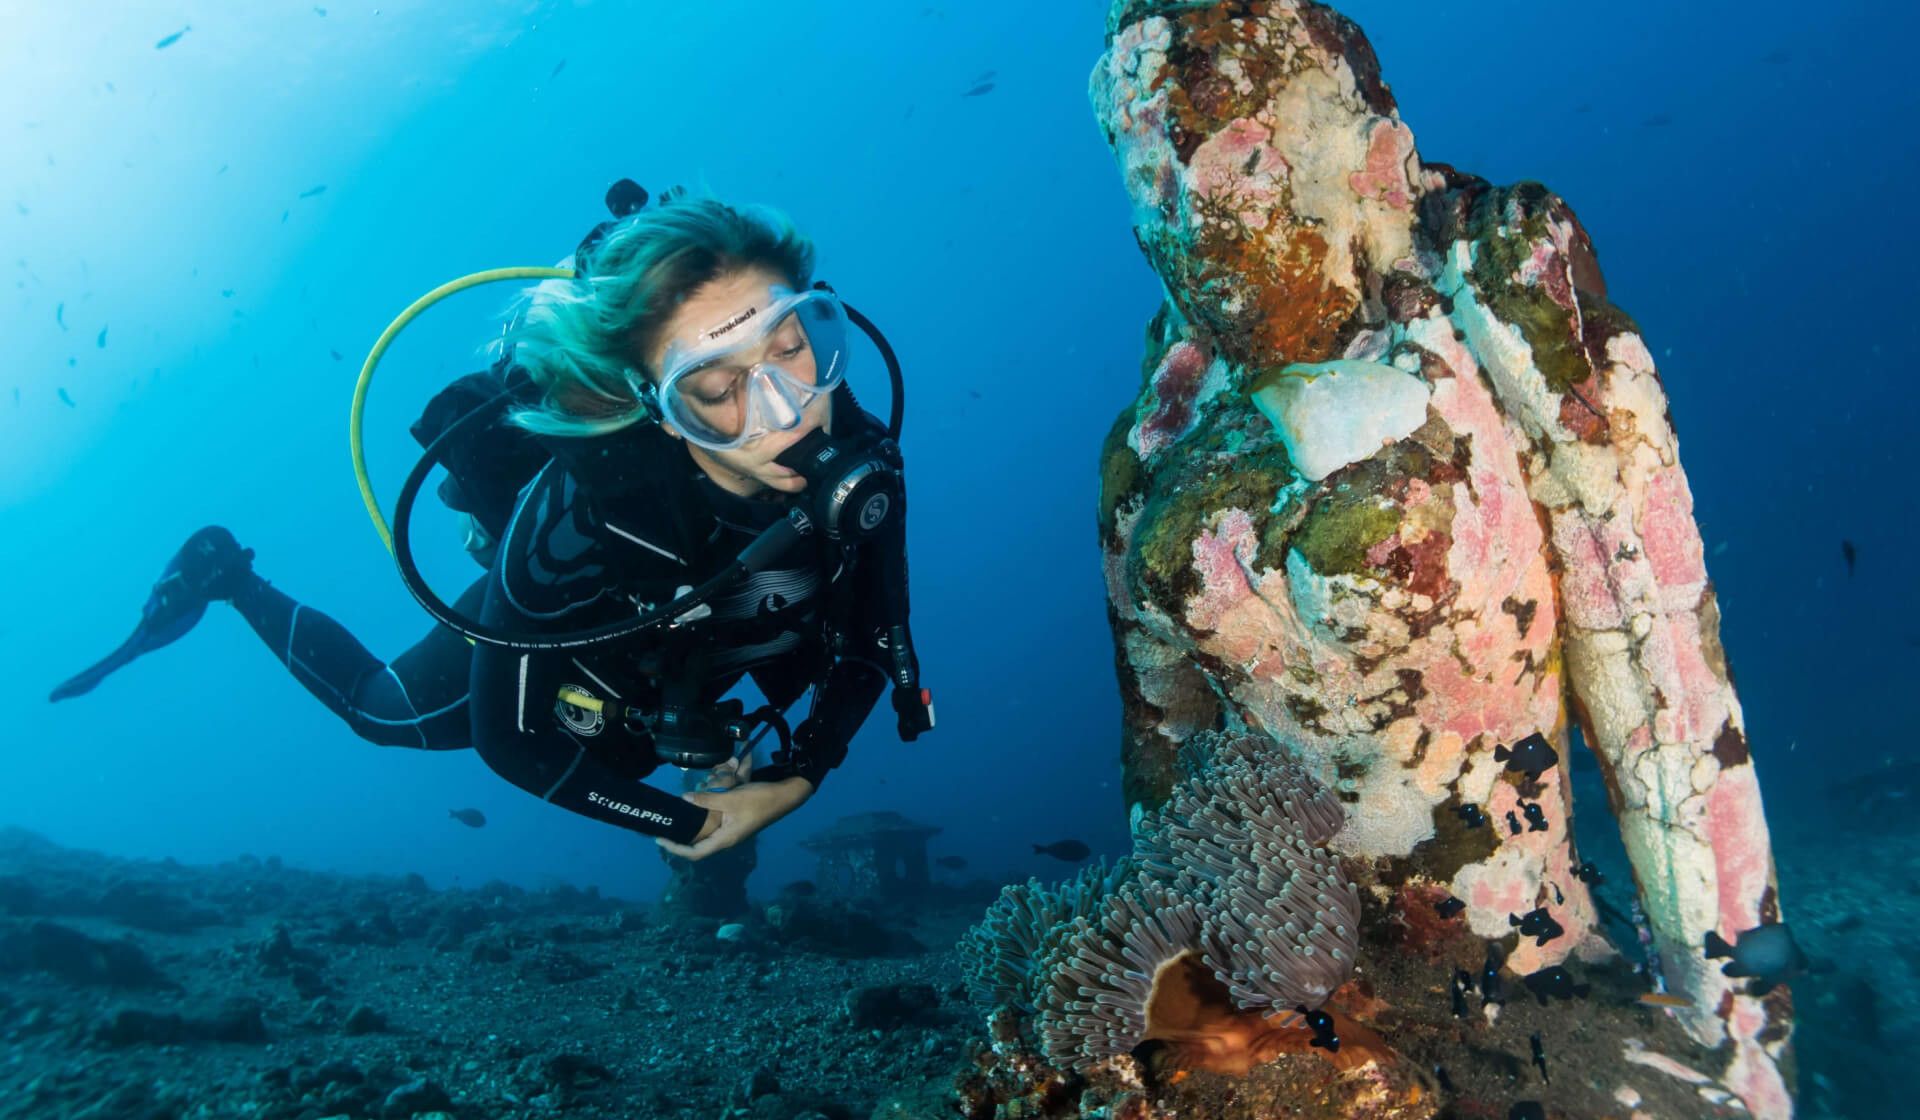 Women scuba diving next to an underwater statue covered in coral